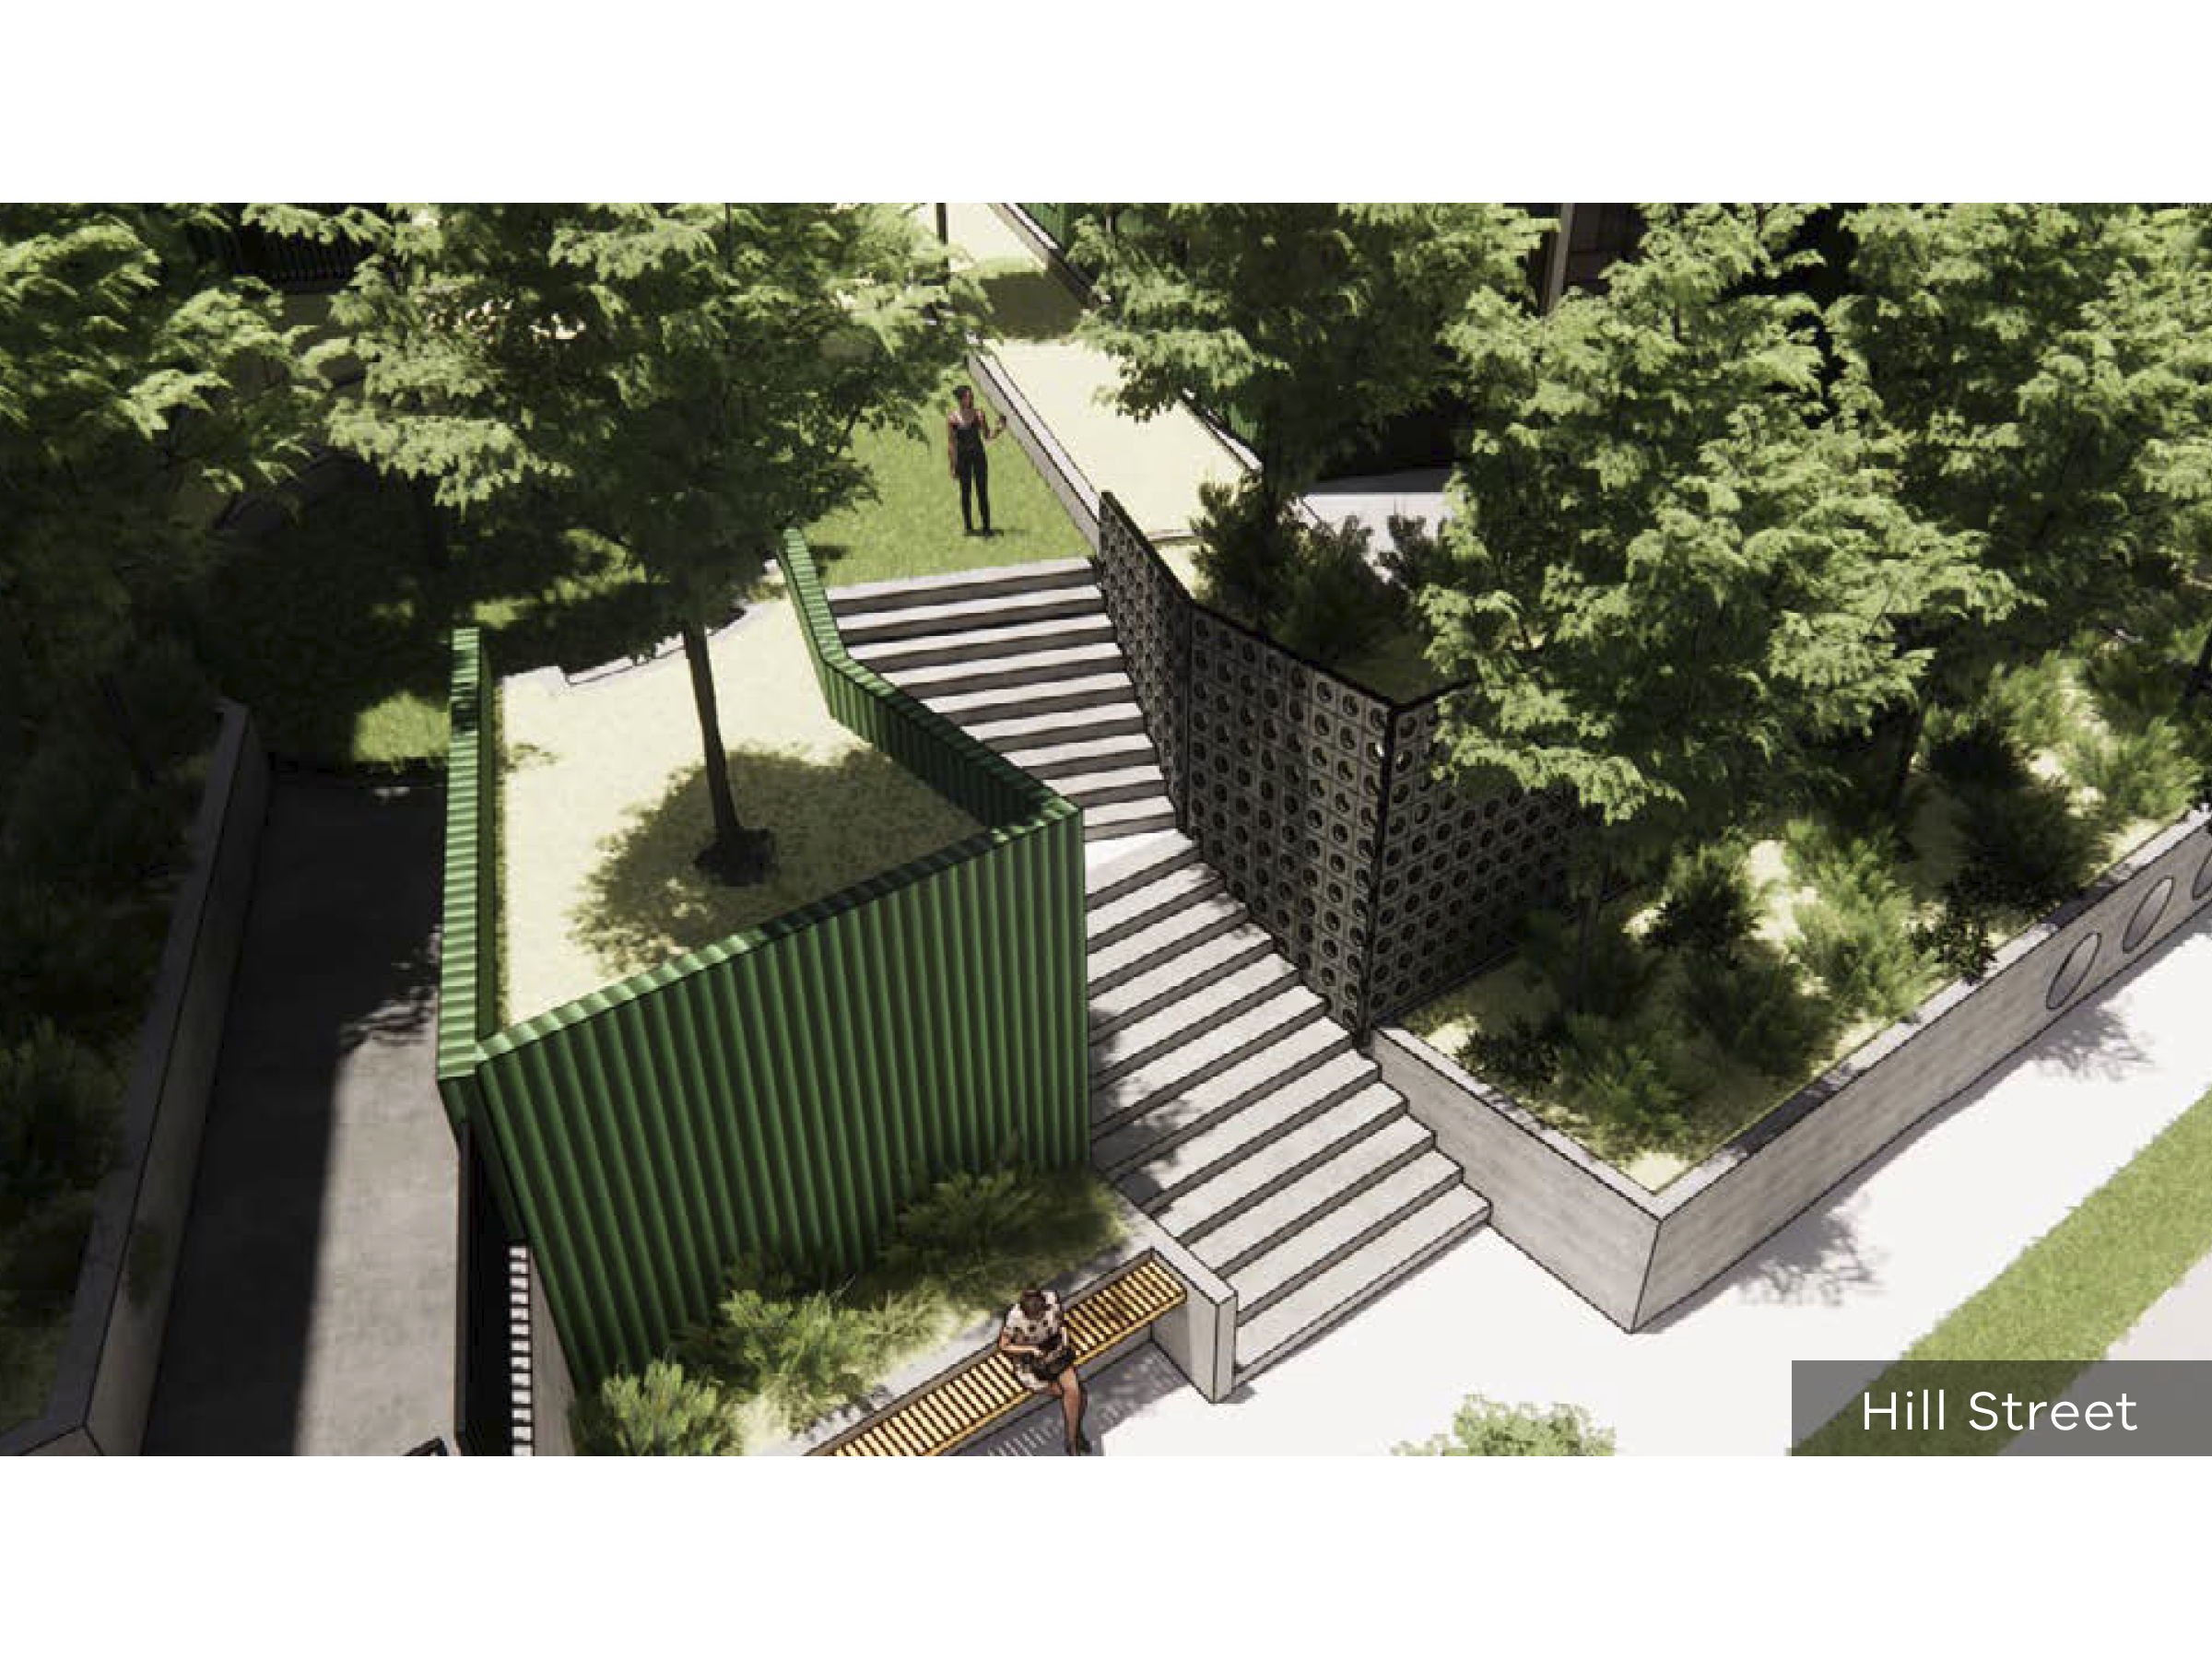 Artist impression of the new development showing a staircase to access the site at Hill Street